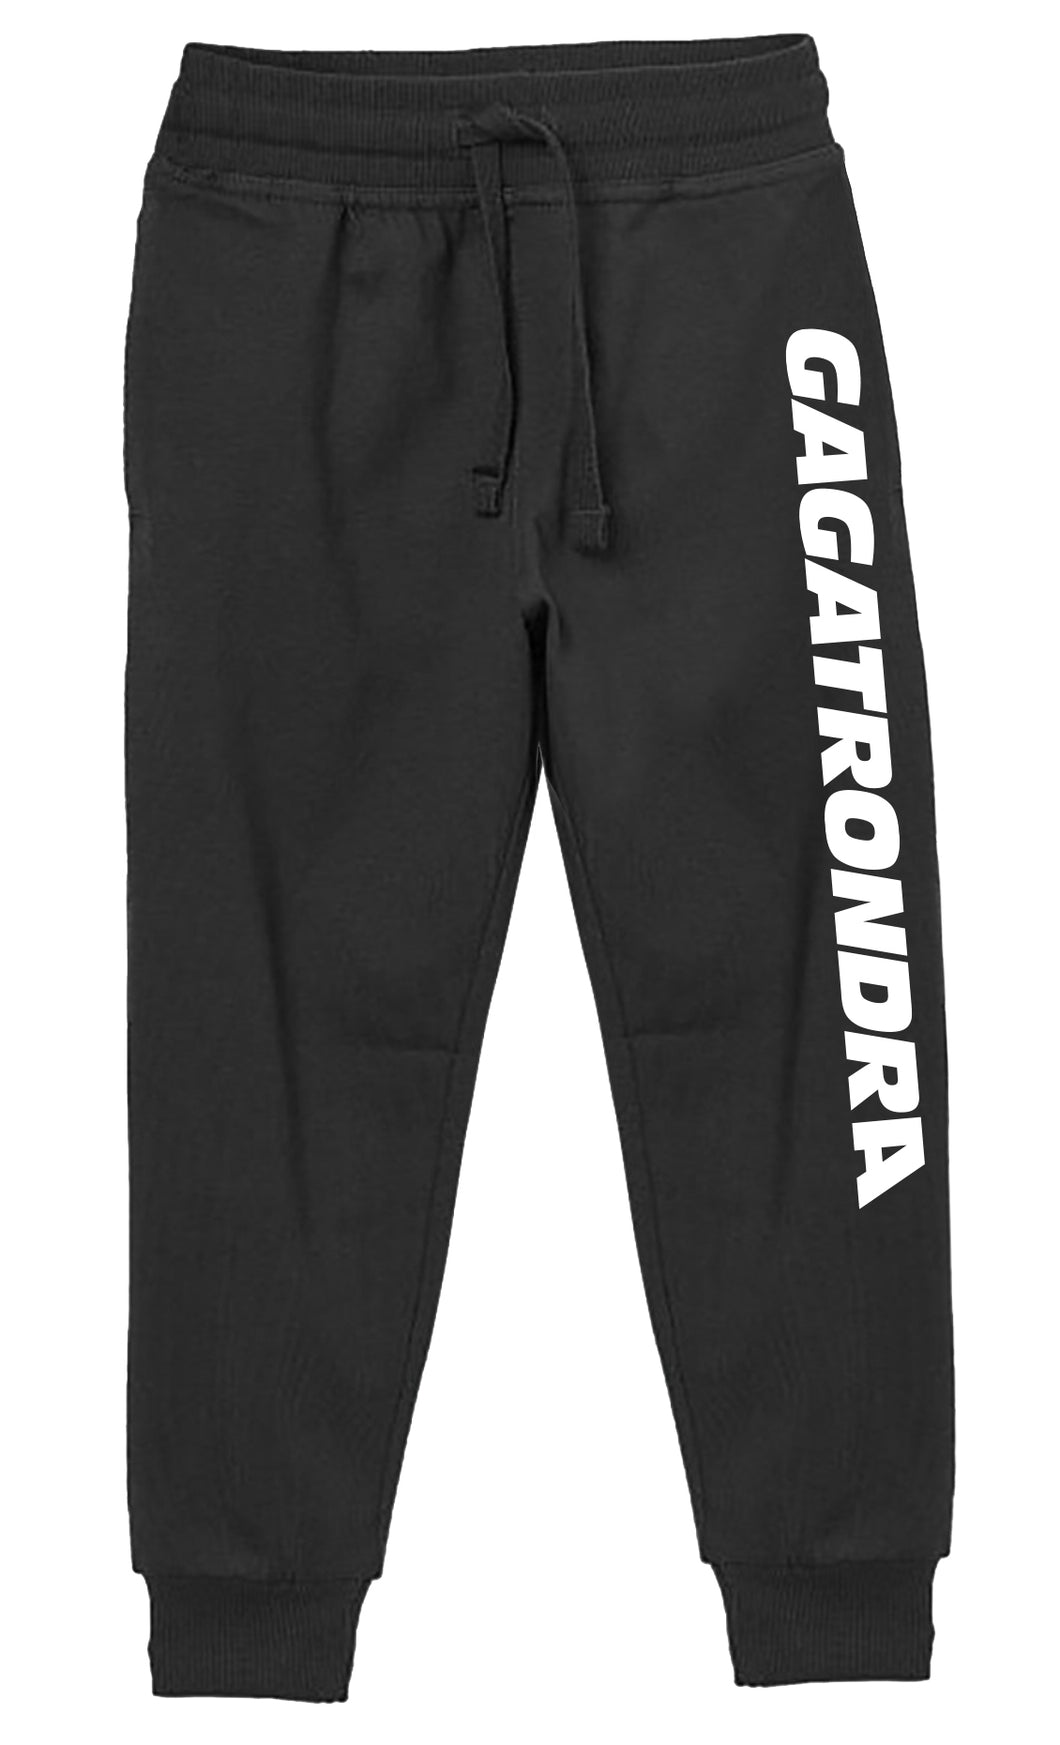 Gagatrondra Sweats